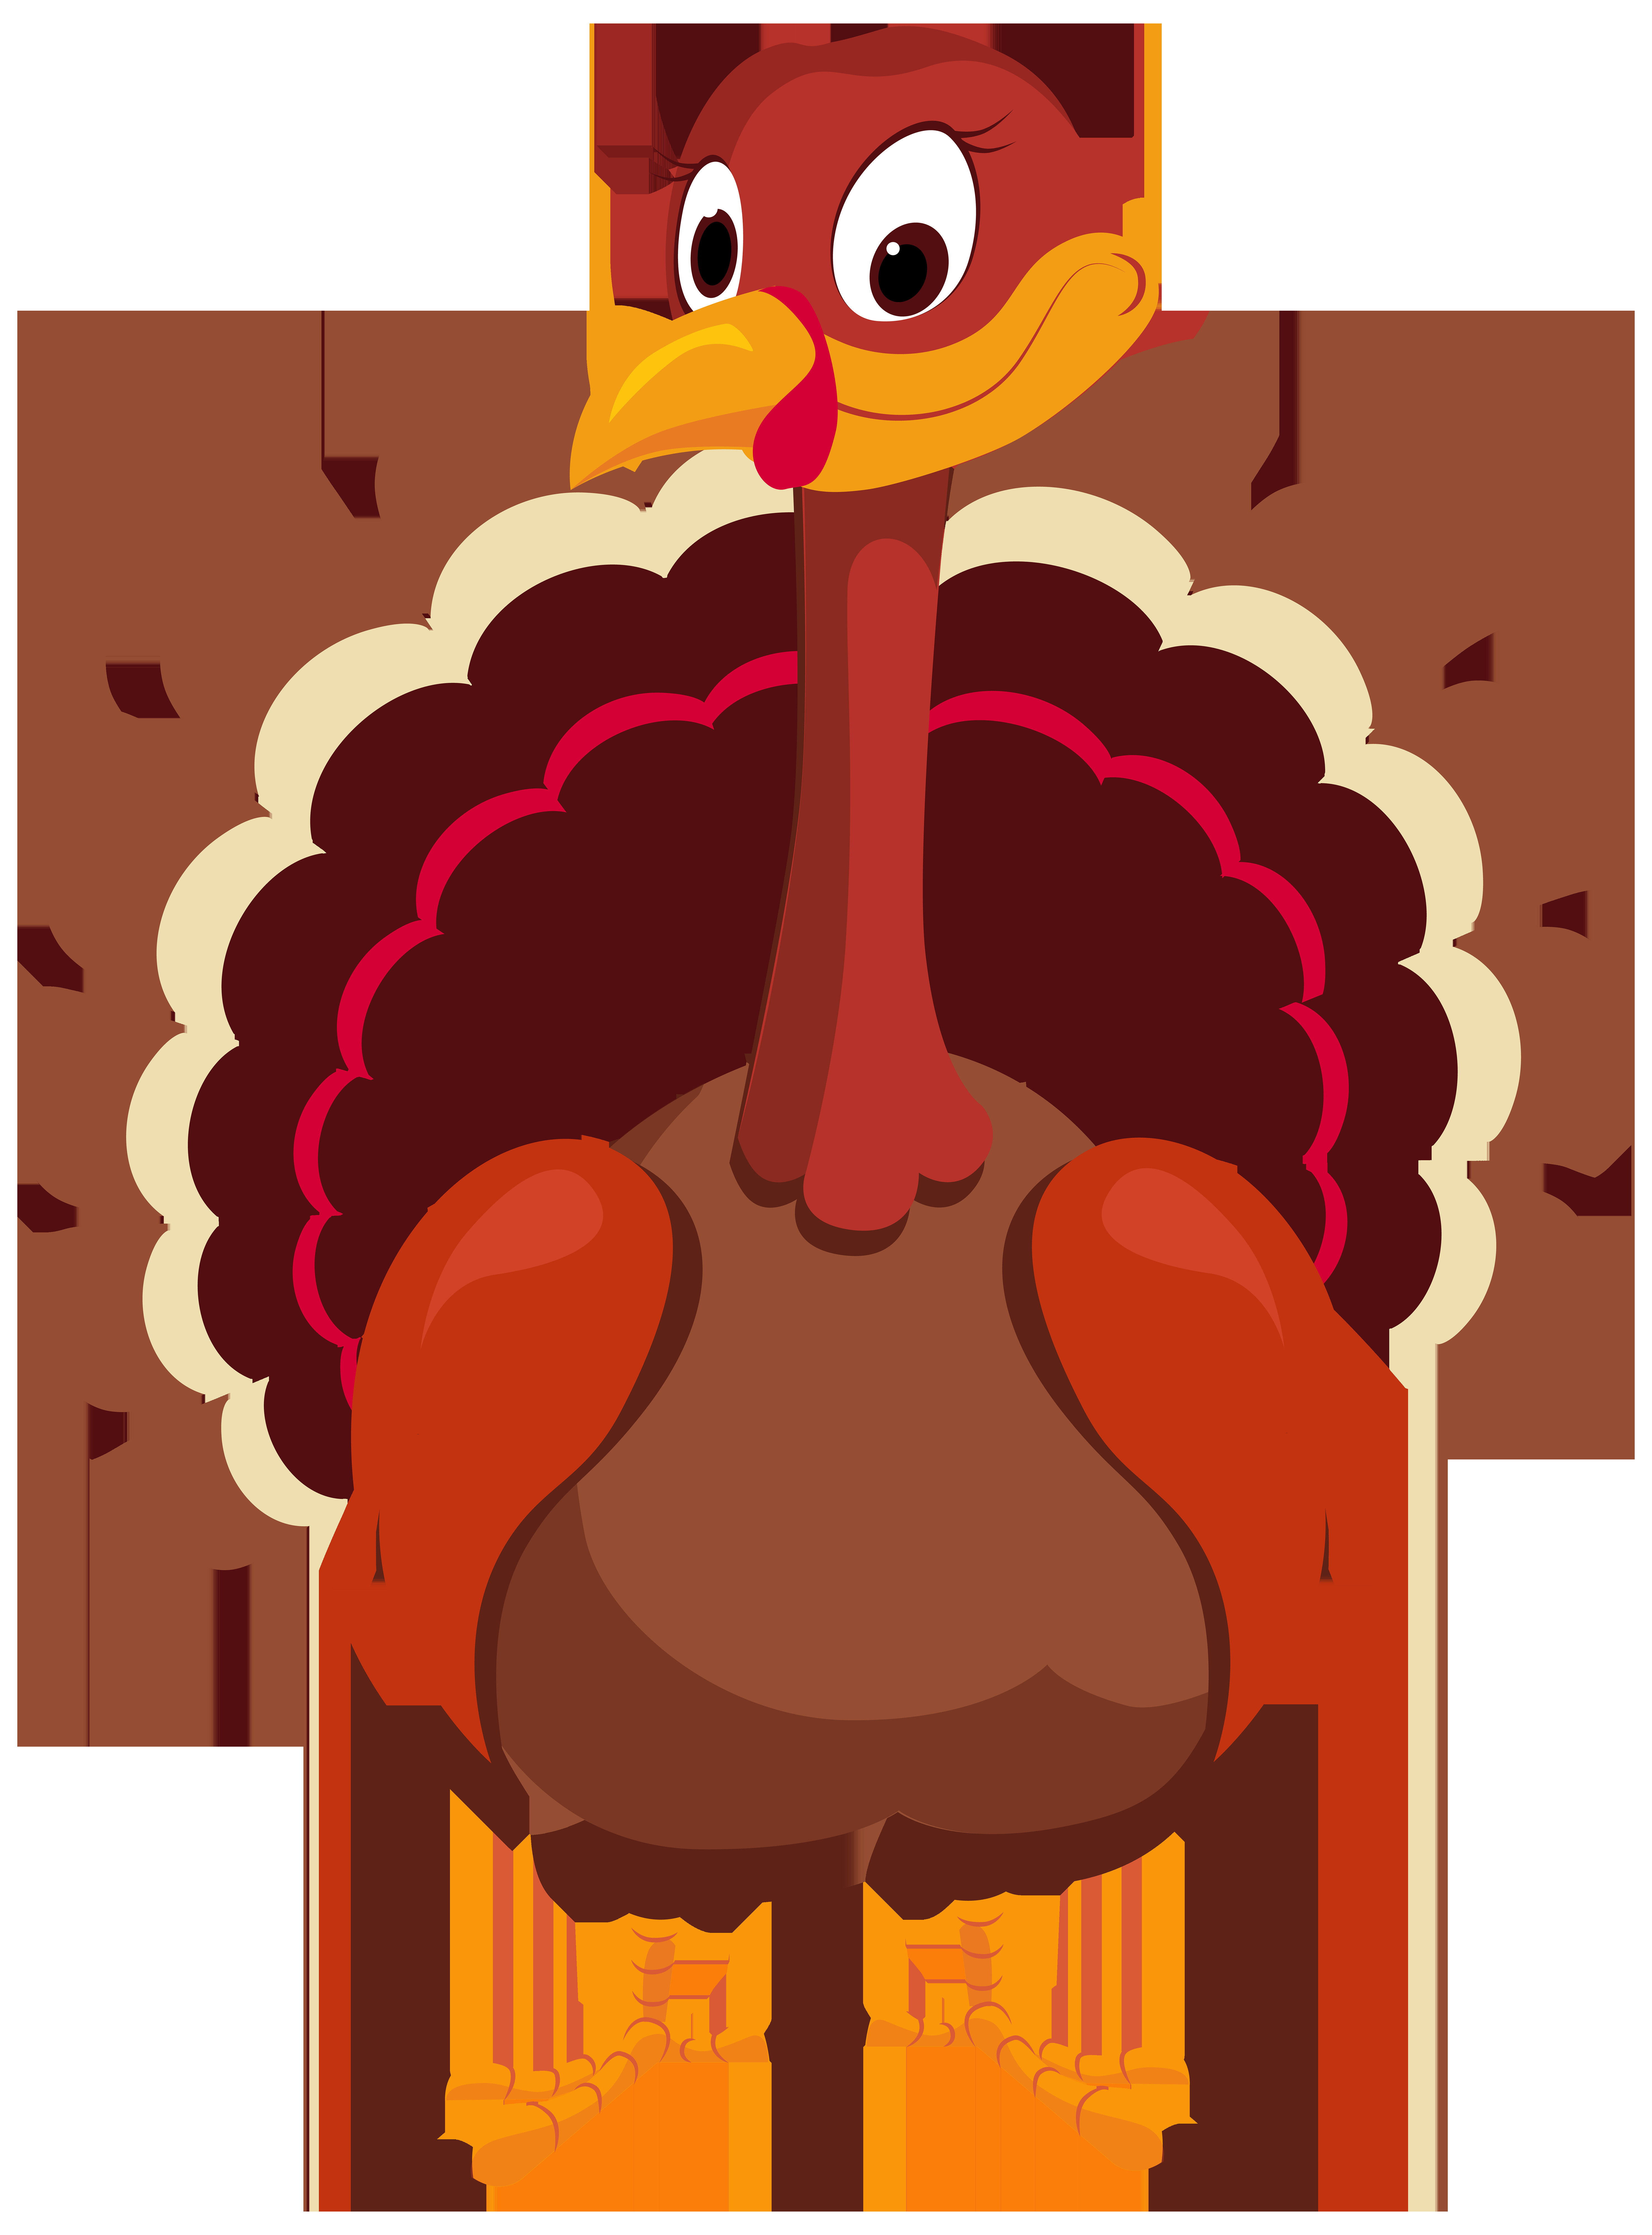 Thanksgiving Turkey Cartoon Images  Turkey clipart png transparent Pencil and in color